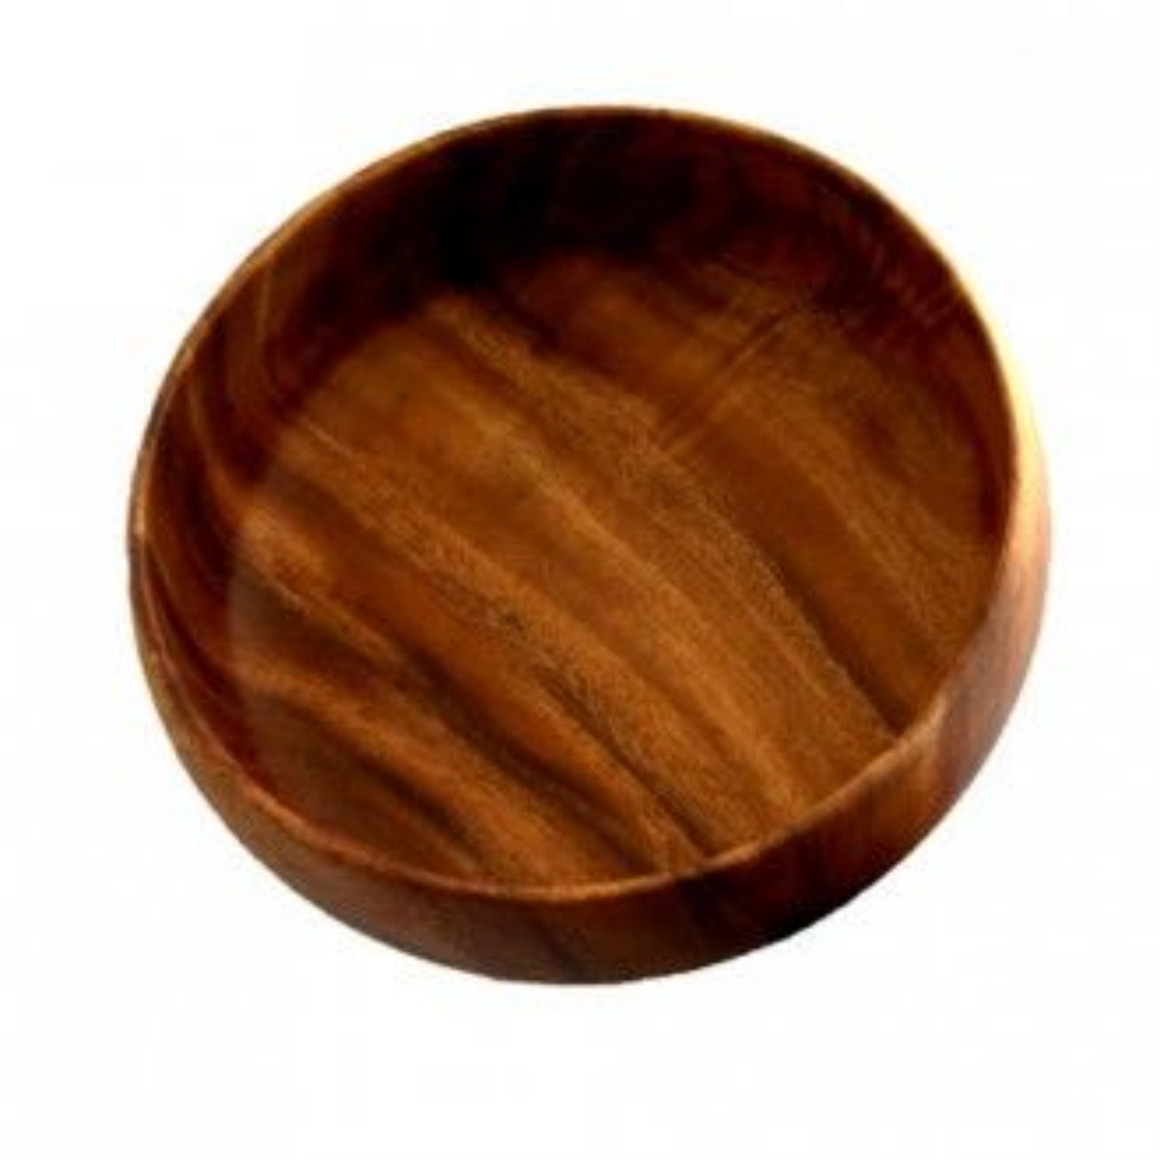 HANDCRAFTED CALABASH BOWL LARGE